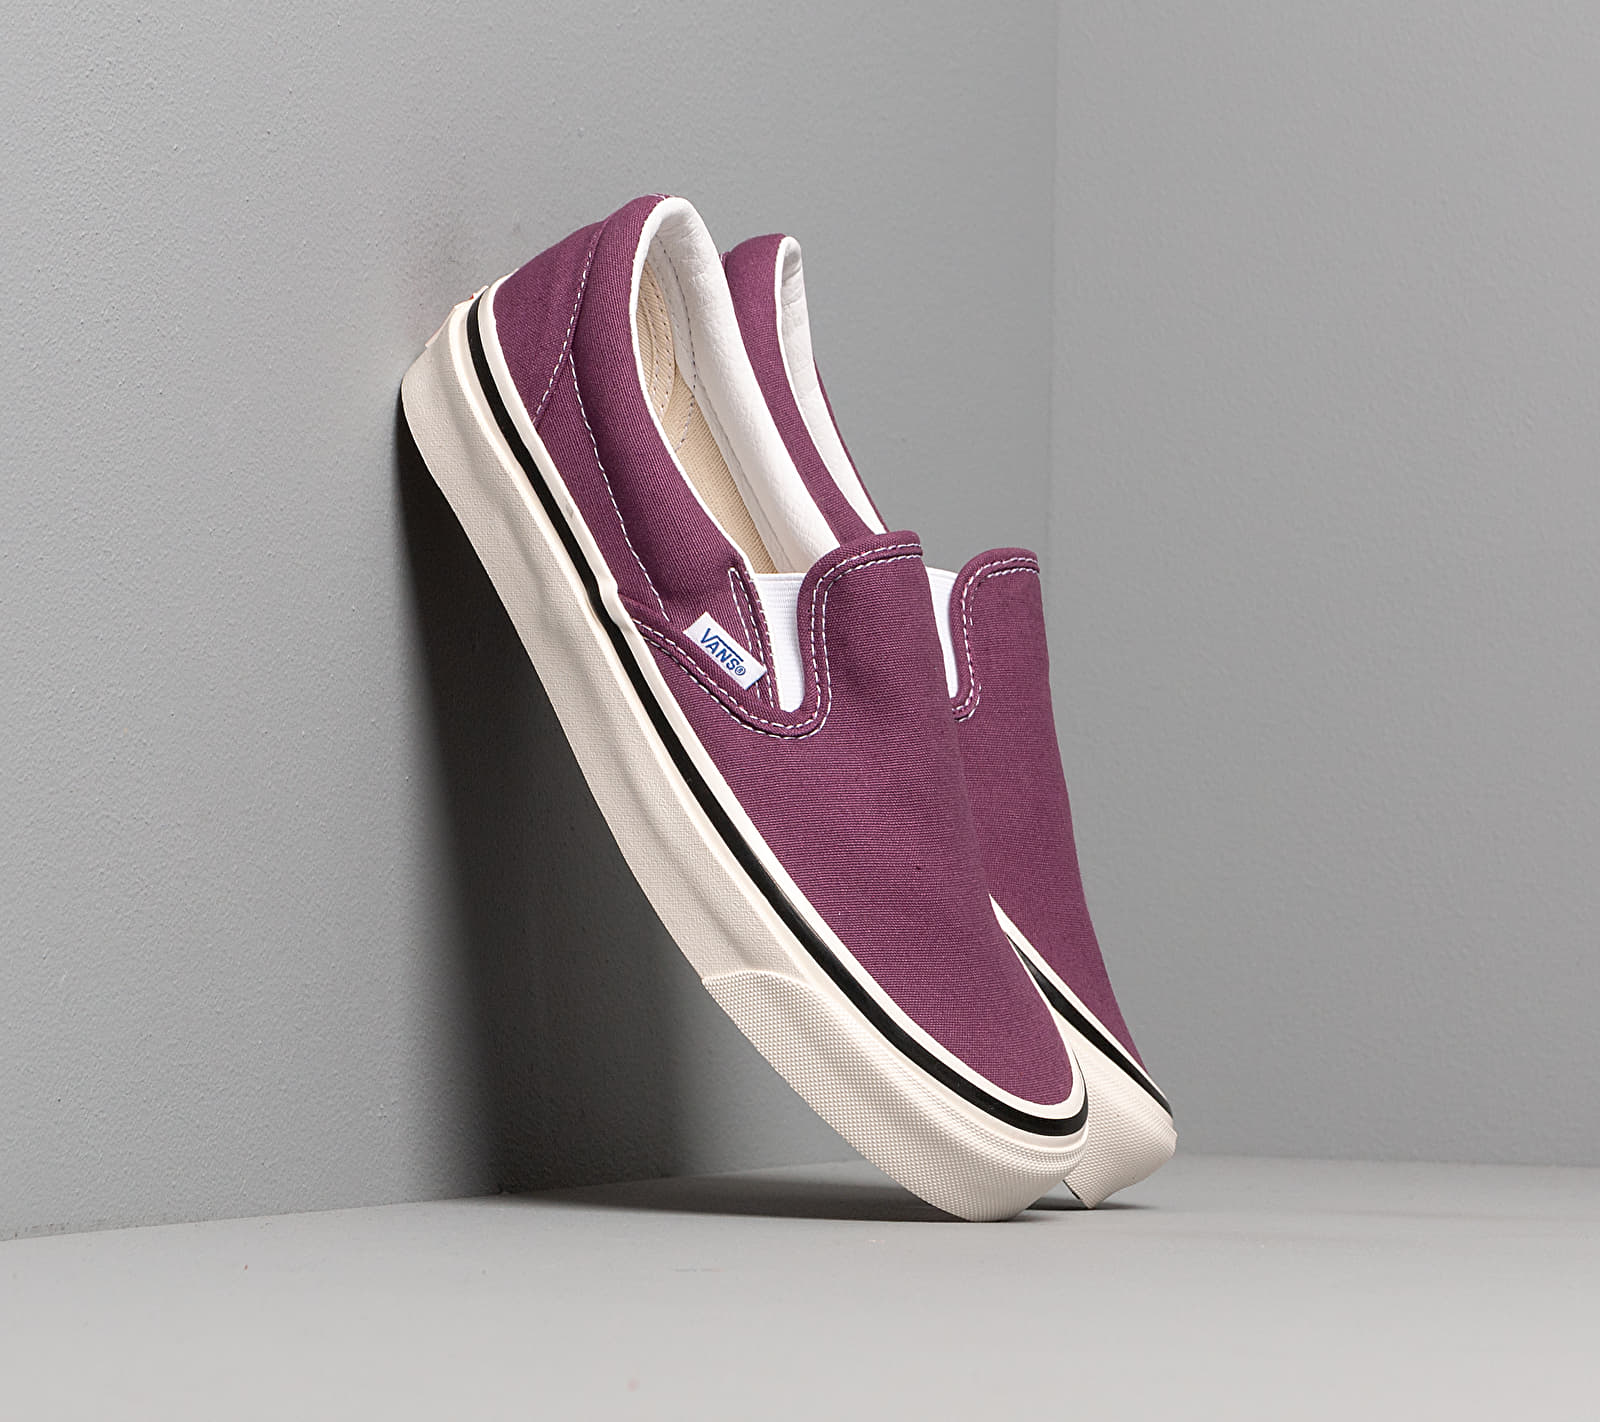 Vans Classic Slip-On 9 OG Grape EUR 36